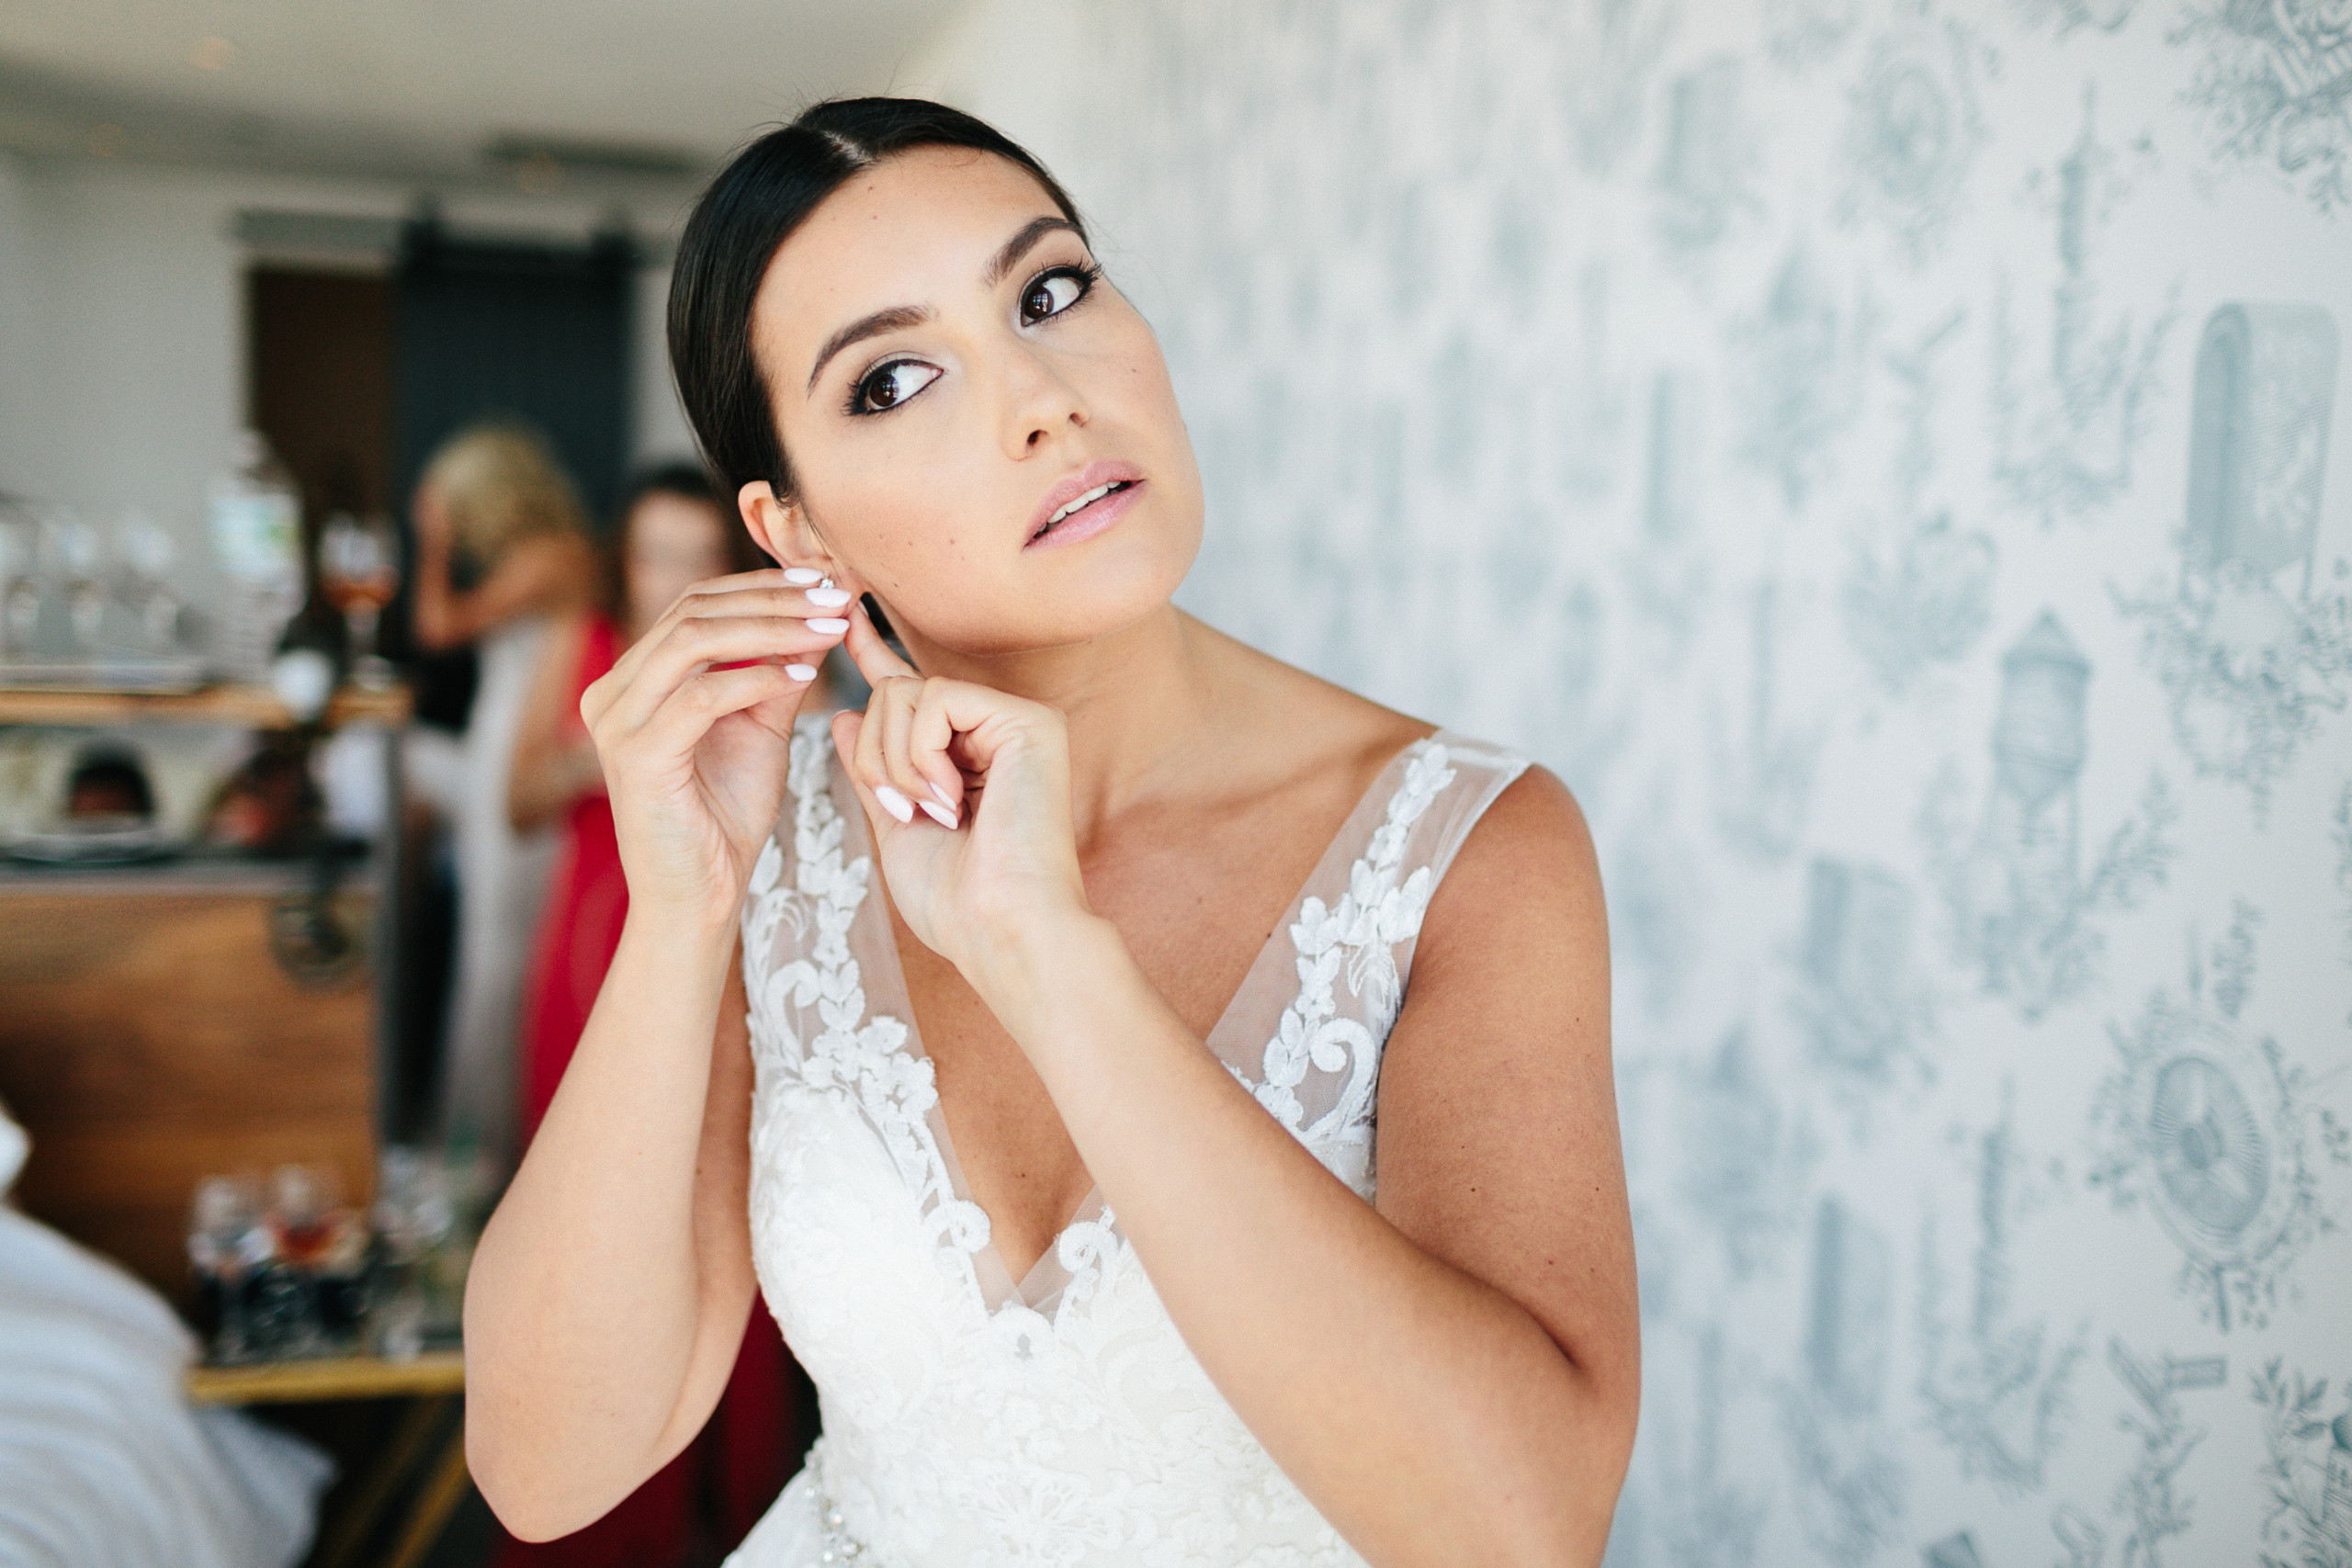 Bride with movie star face puts on her earrings before ceremony at Wythe Hotel in Williamsburg, Brooklyn